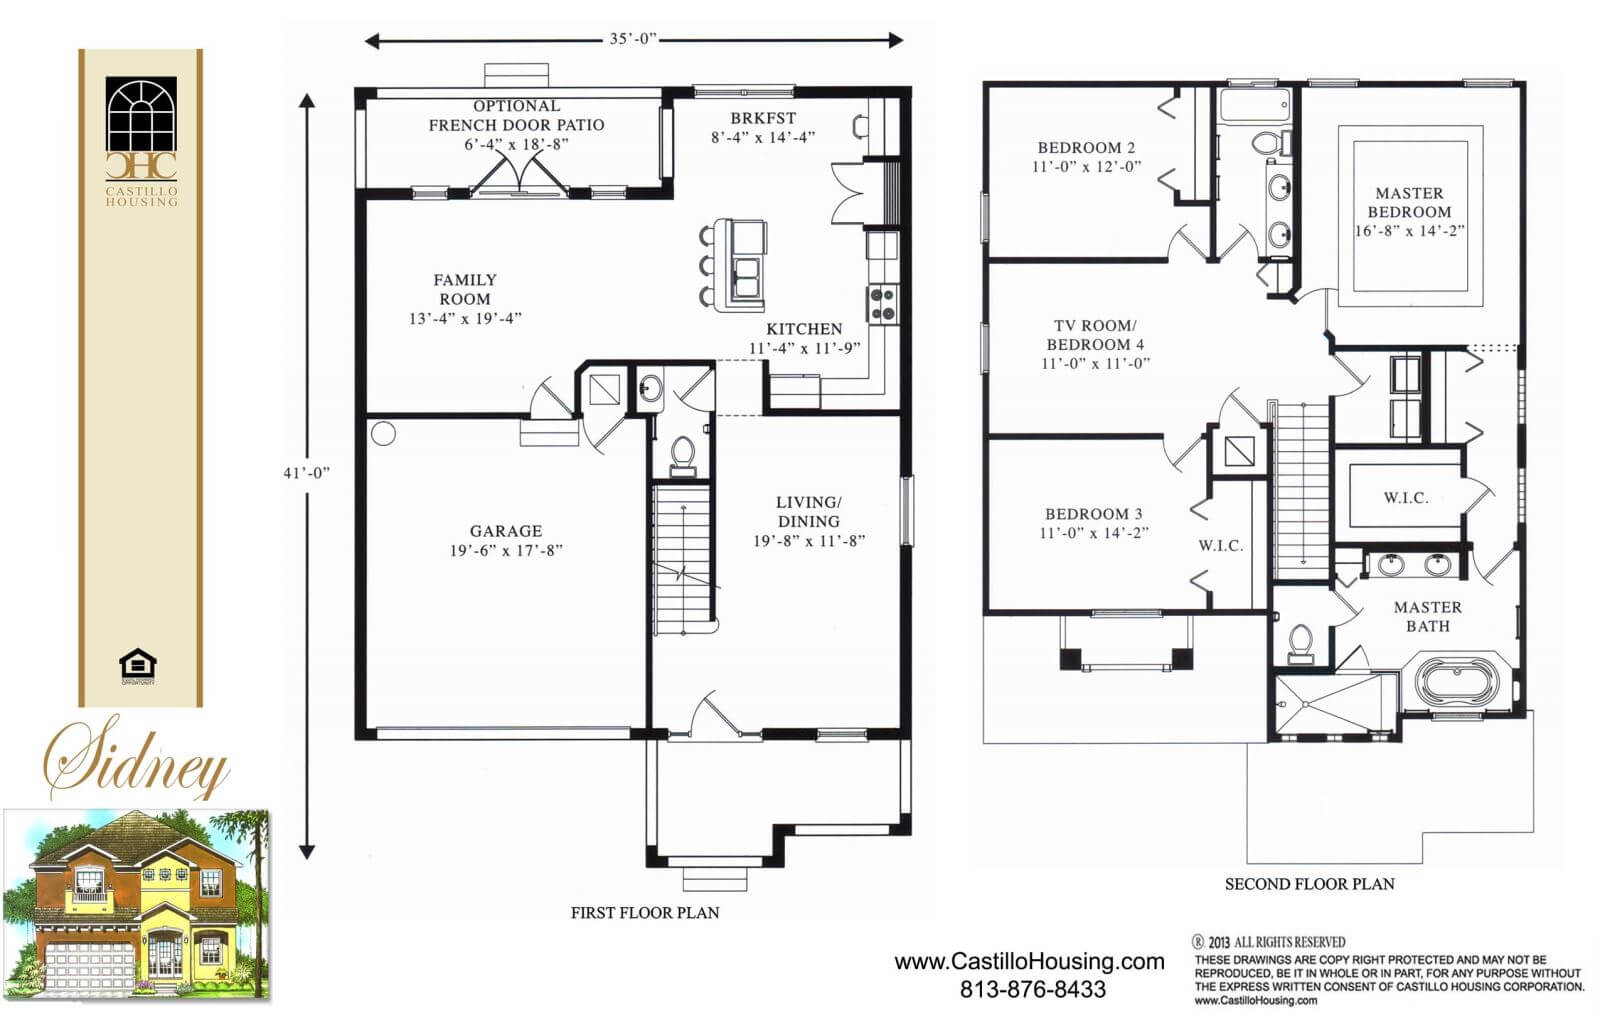 Floor Plans,2,001 SQ FT TO 2,500 SQ FT,1034